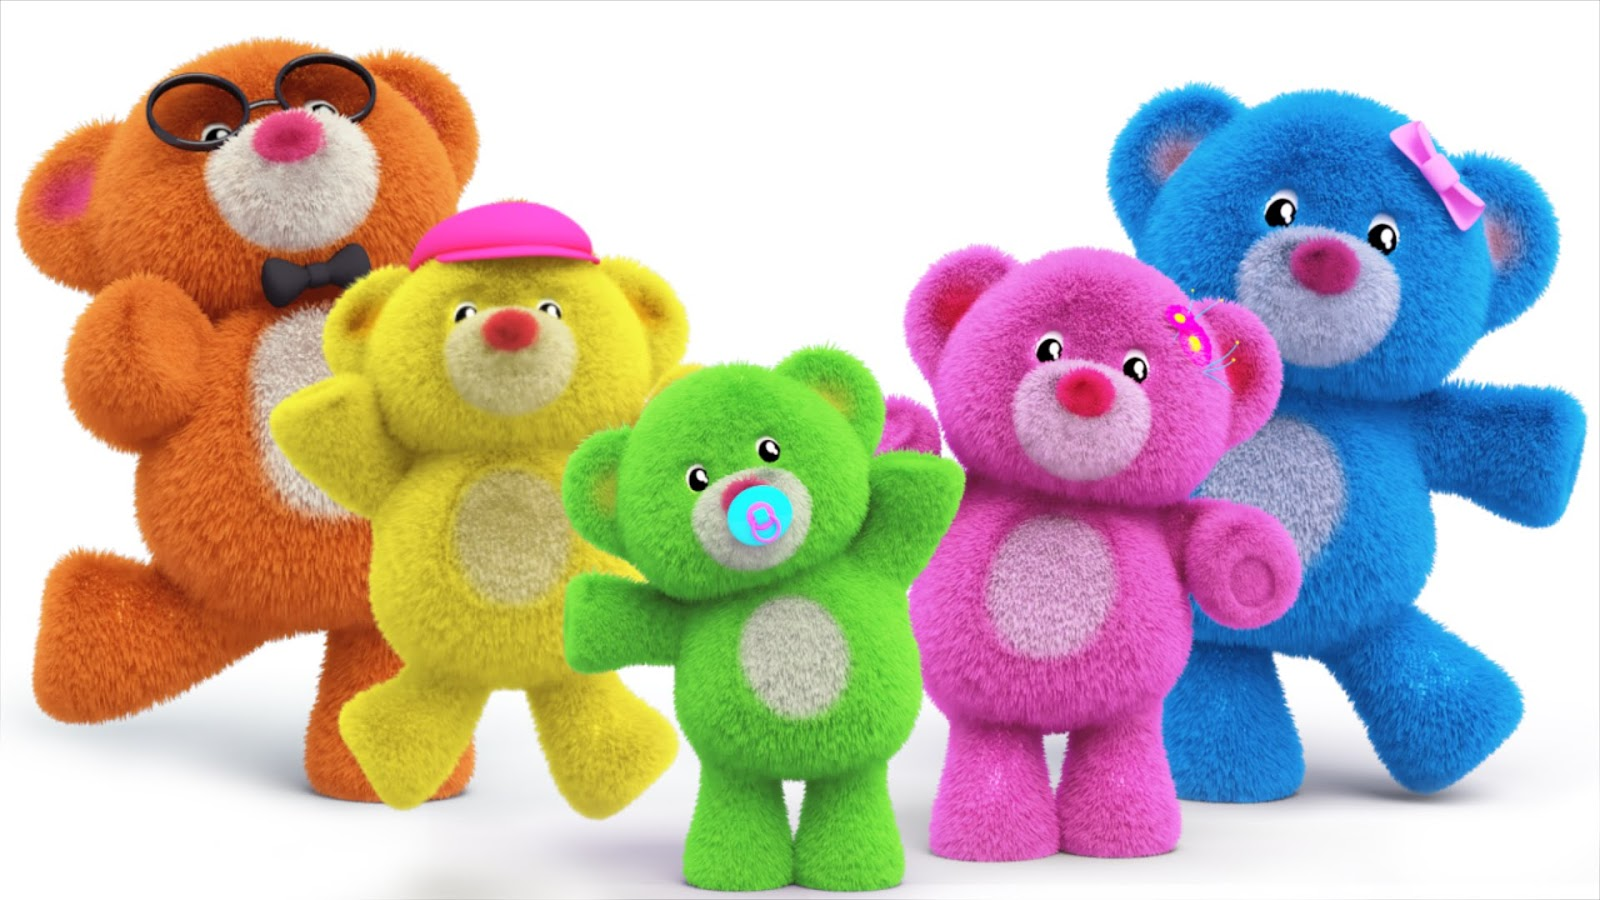 Teddy day 2018 quotes sms wishesmessages here are some teddy day messages teddy day sms teddy day quotes teddy day wishes and teddy day greetings read our collection of teddy day sms and send m4hsunfo